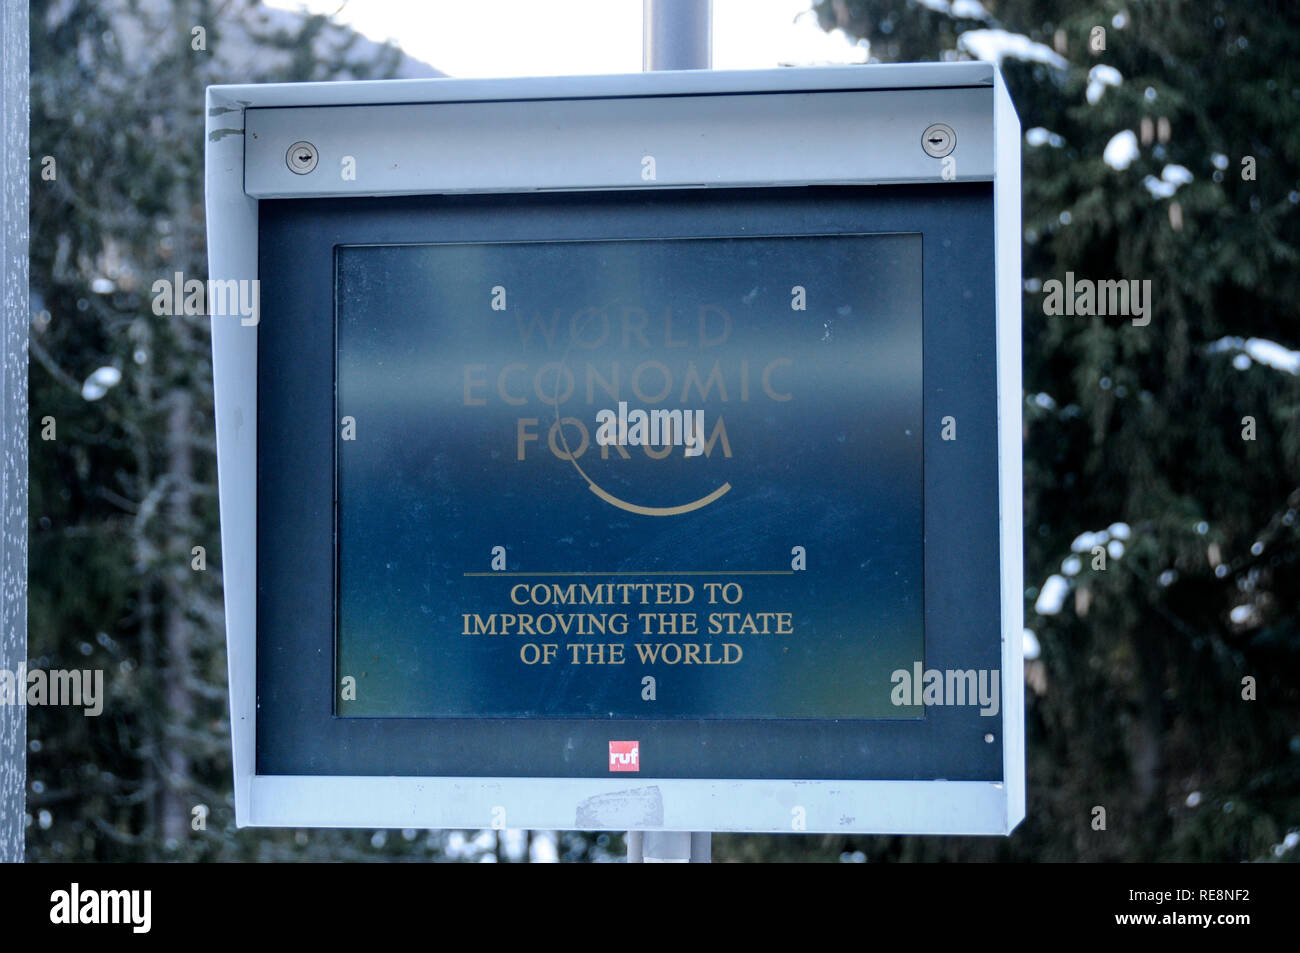 A digital sign at the Kongress Zentrum, (venue for the annual World Economic Forum), in the Promenade, Davos, Switzerland - Stock Image